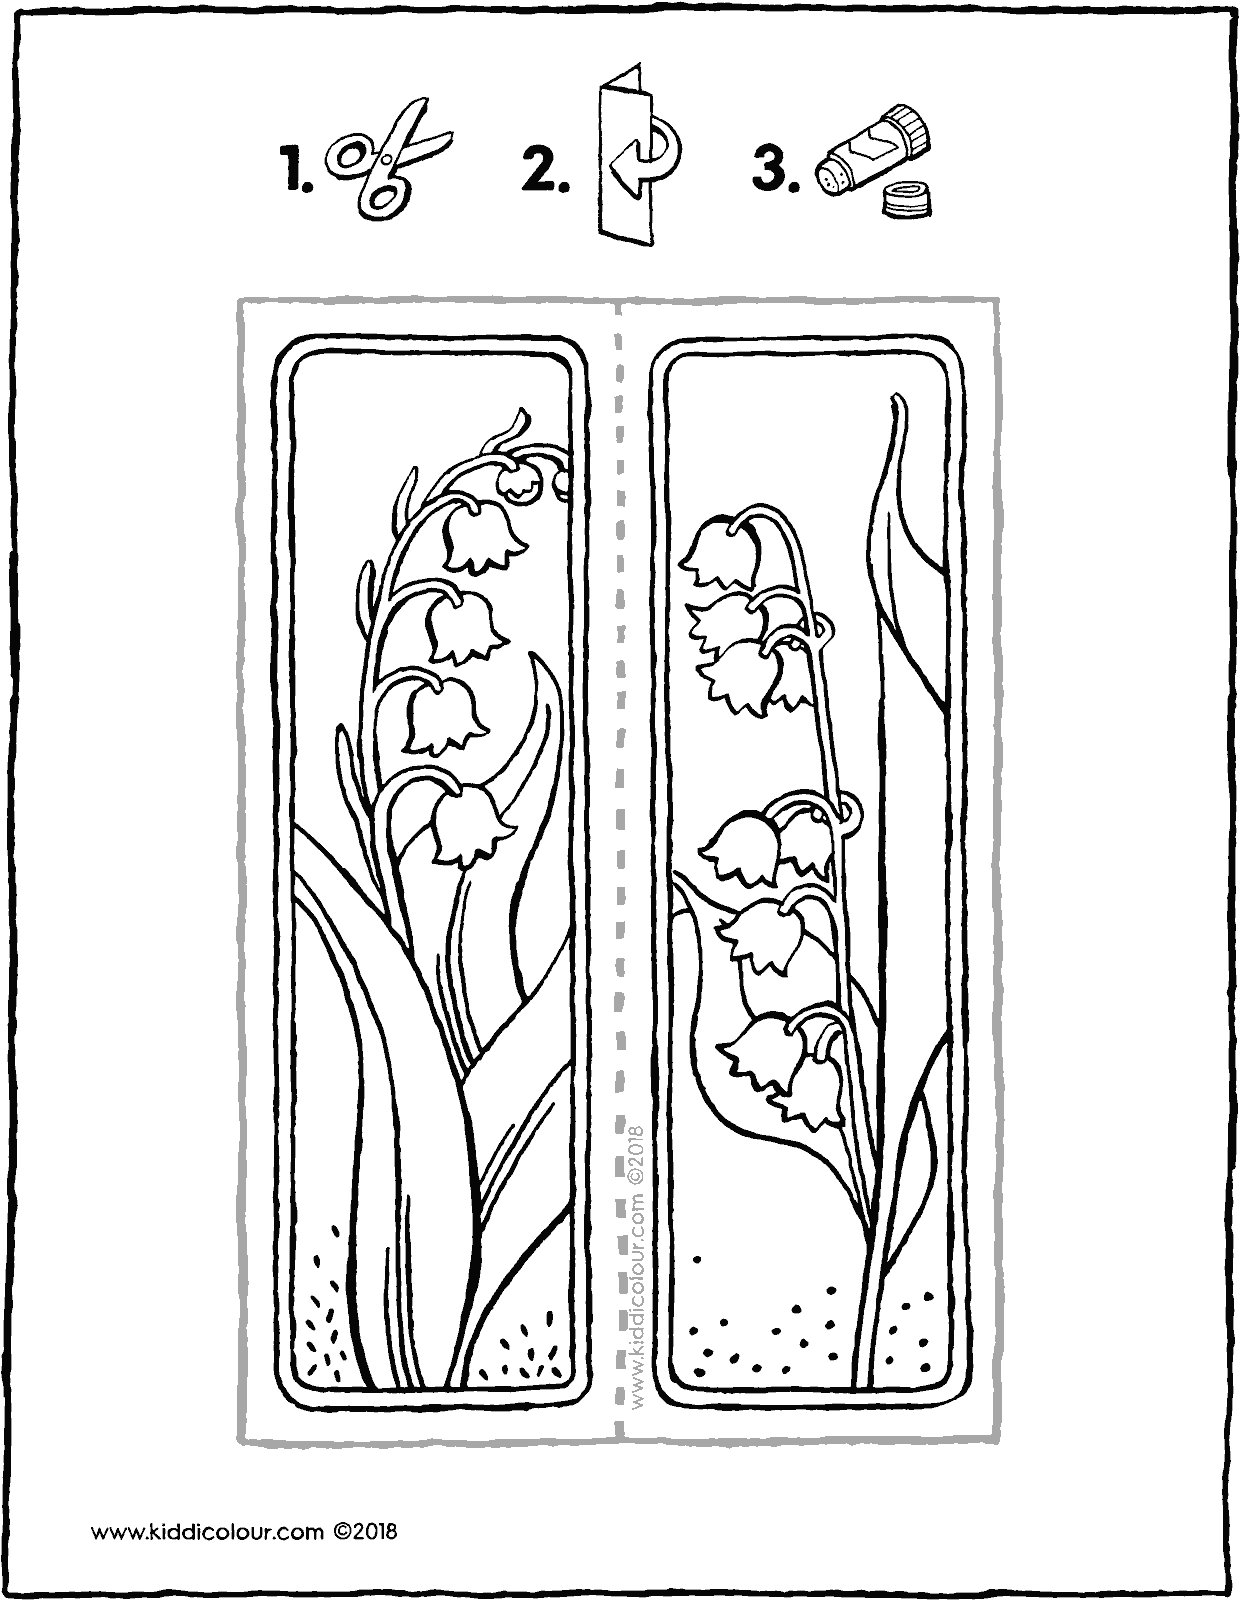 lilies of the valley bookmark colouring page drawing picture 01V